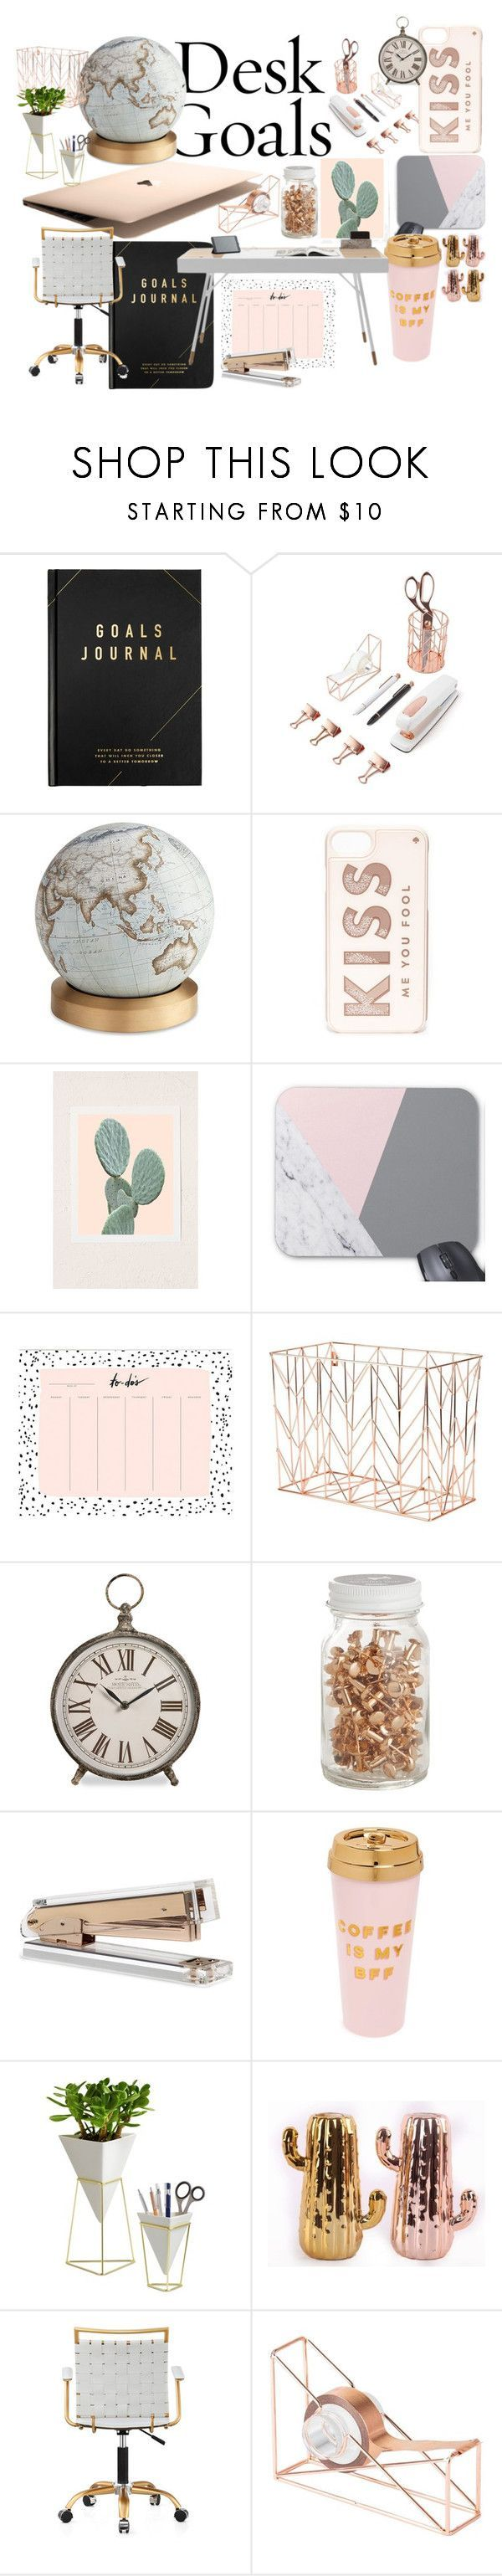 """tumblr rose gold desk"" by martuvillanova ❤ liked on Polyvore featuring interior, interiors, interior design, home, home decor, interior decorating, kikki.K, U Brands, Bellerby & Co and Kate Spade"